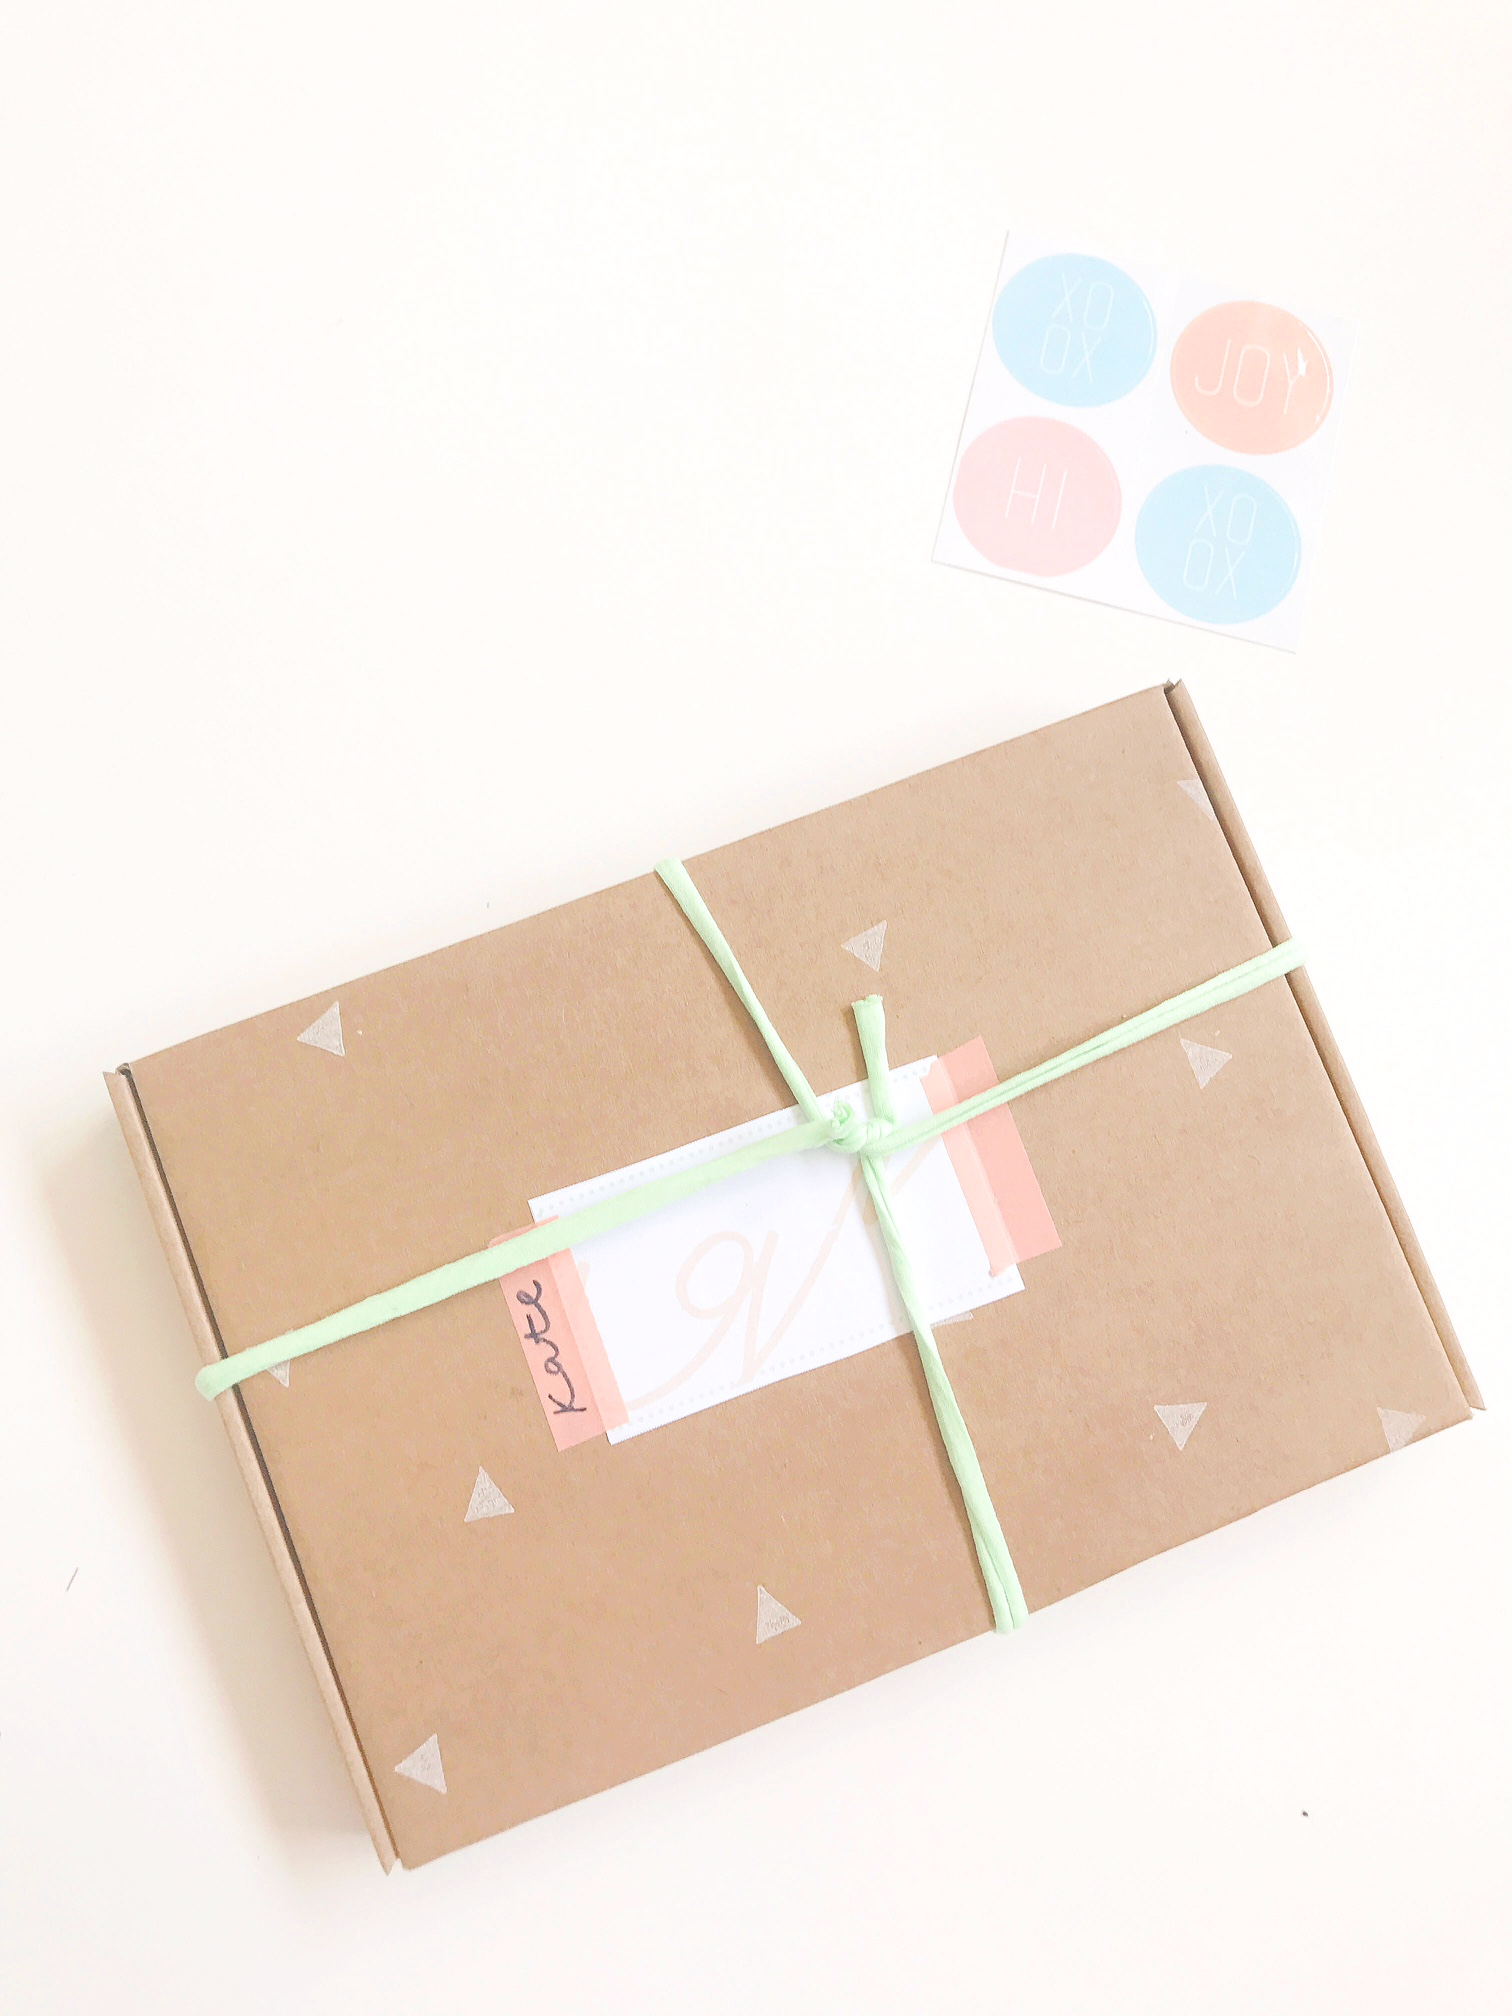 The larger size free label downloads will fit over your address label sticker, just use your washi tape or sellotape to stick down. Tie with ribbon or raffia if you have any. Get creative with writing your recipients name on the label, washi tape or box. Your gift is wrapped, you're ready to go!